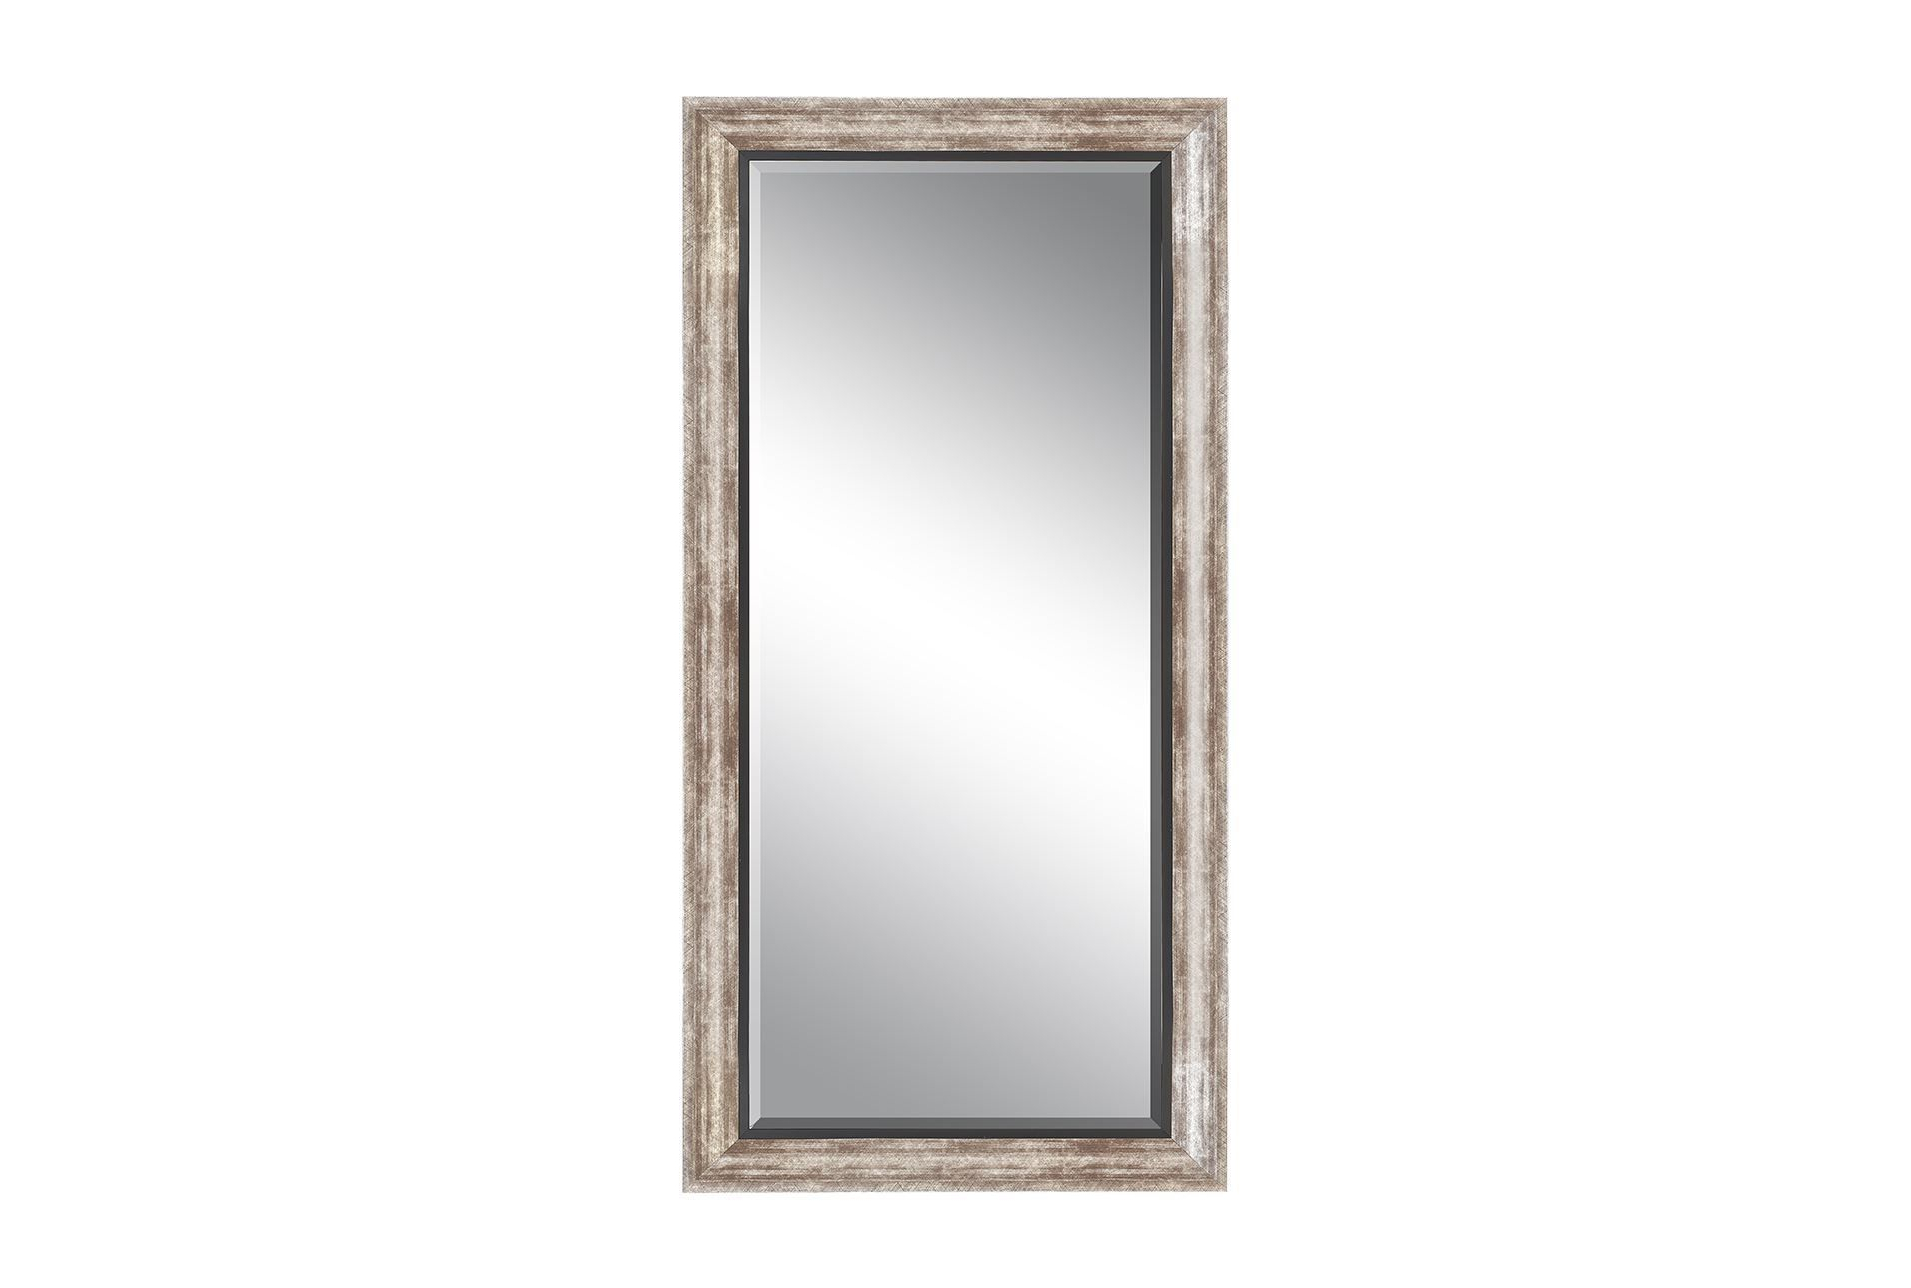 Beveled Mirror Regarding Popular Traditional Wall Mirrors (View 6 of 20)